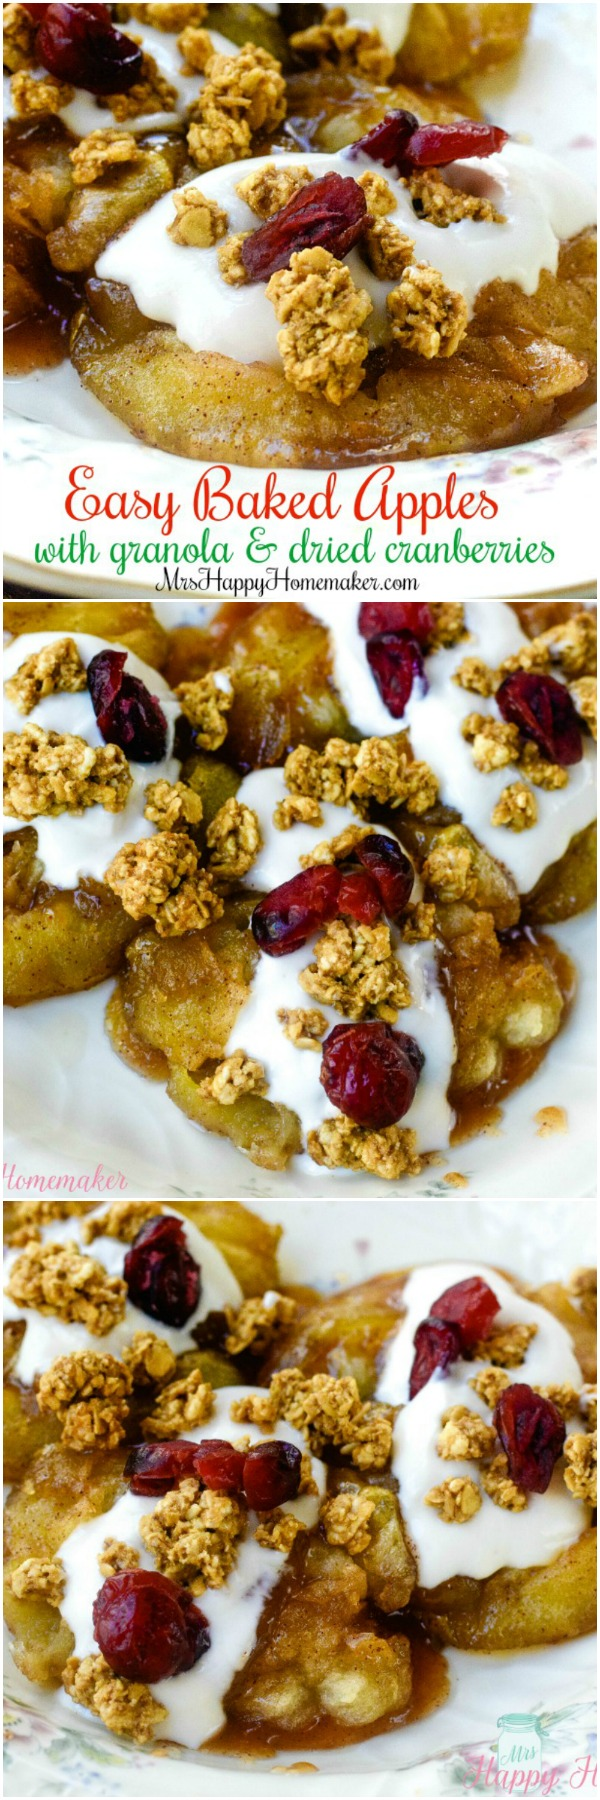 Easy Baked Apples with Vanilla Yogurt, Granola, & Dried Cranberries - one of our favorite breakfasts but also really good as a dessert. | MrsHappyHomemaker.com @thathousewife #bakedapples #breakfast #brunch #dessert #apple #apples